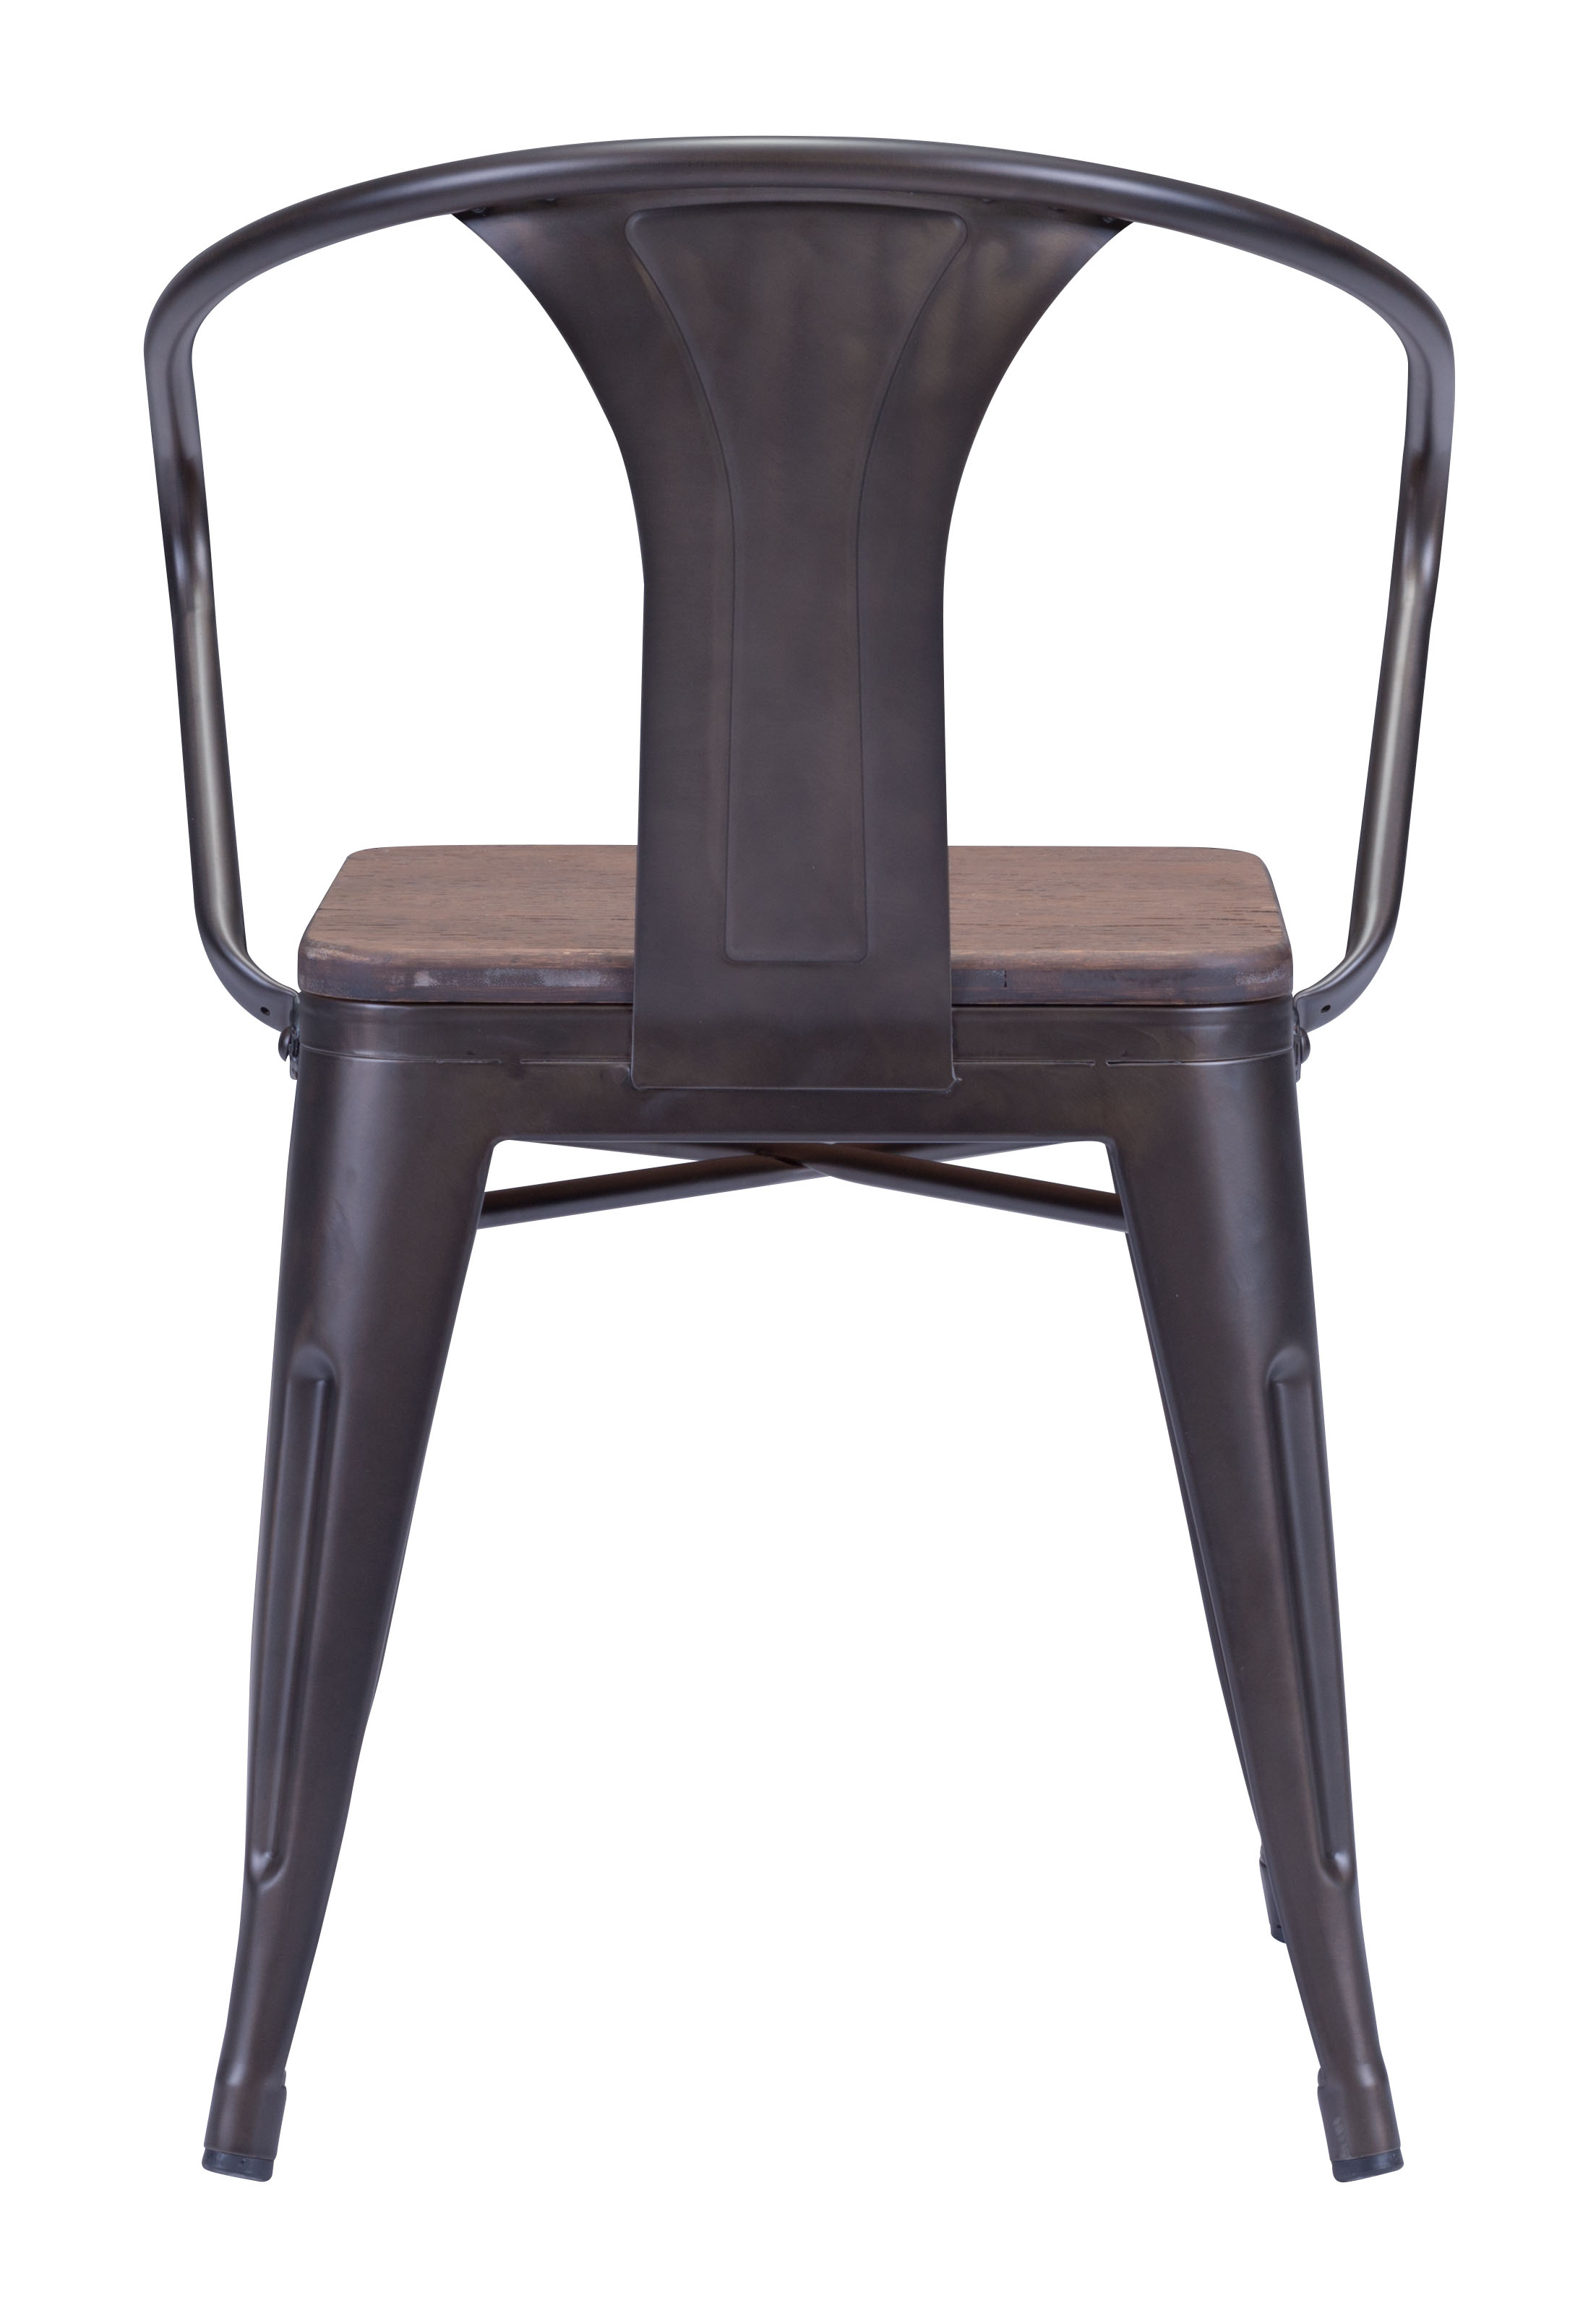 ZUO HELIX DINING CHAIR WITH WOOD SEAT